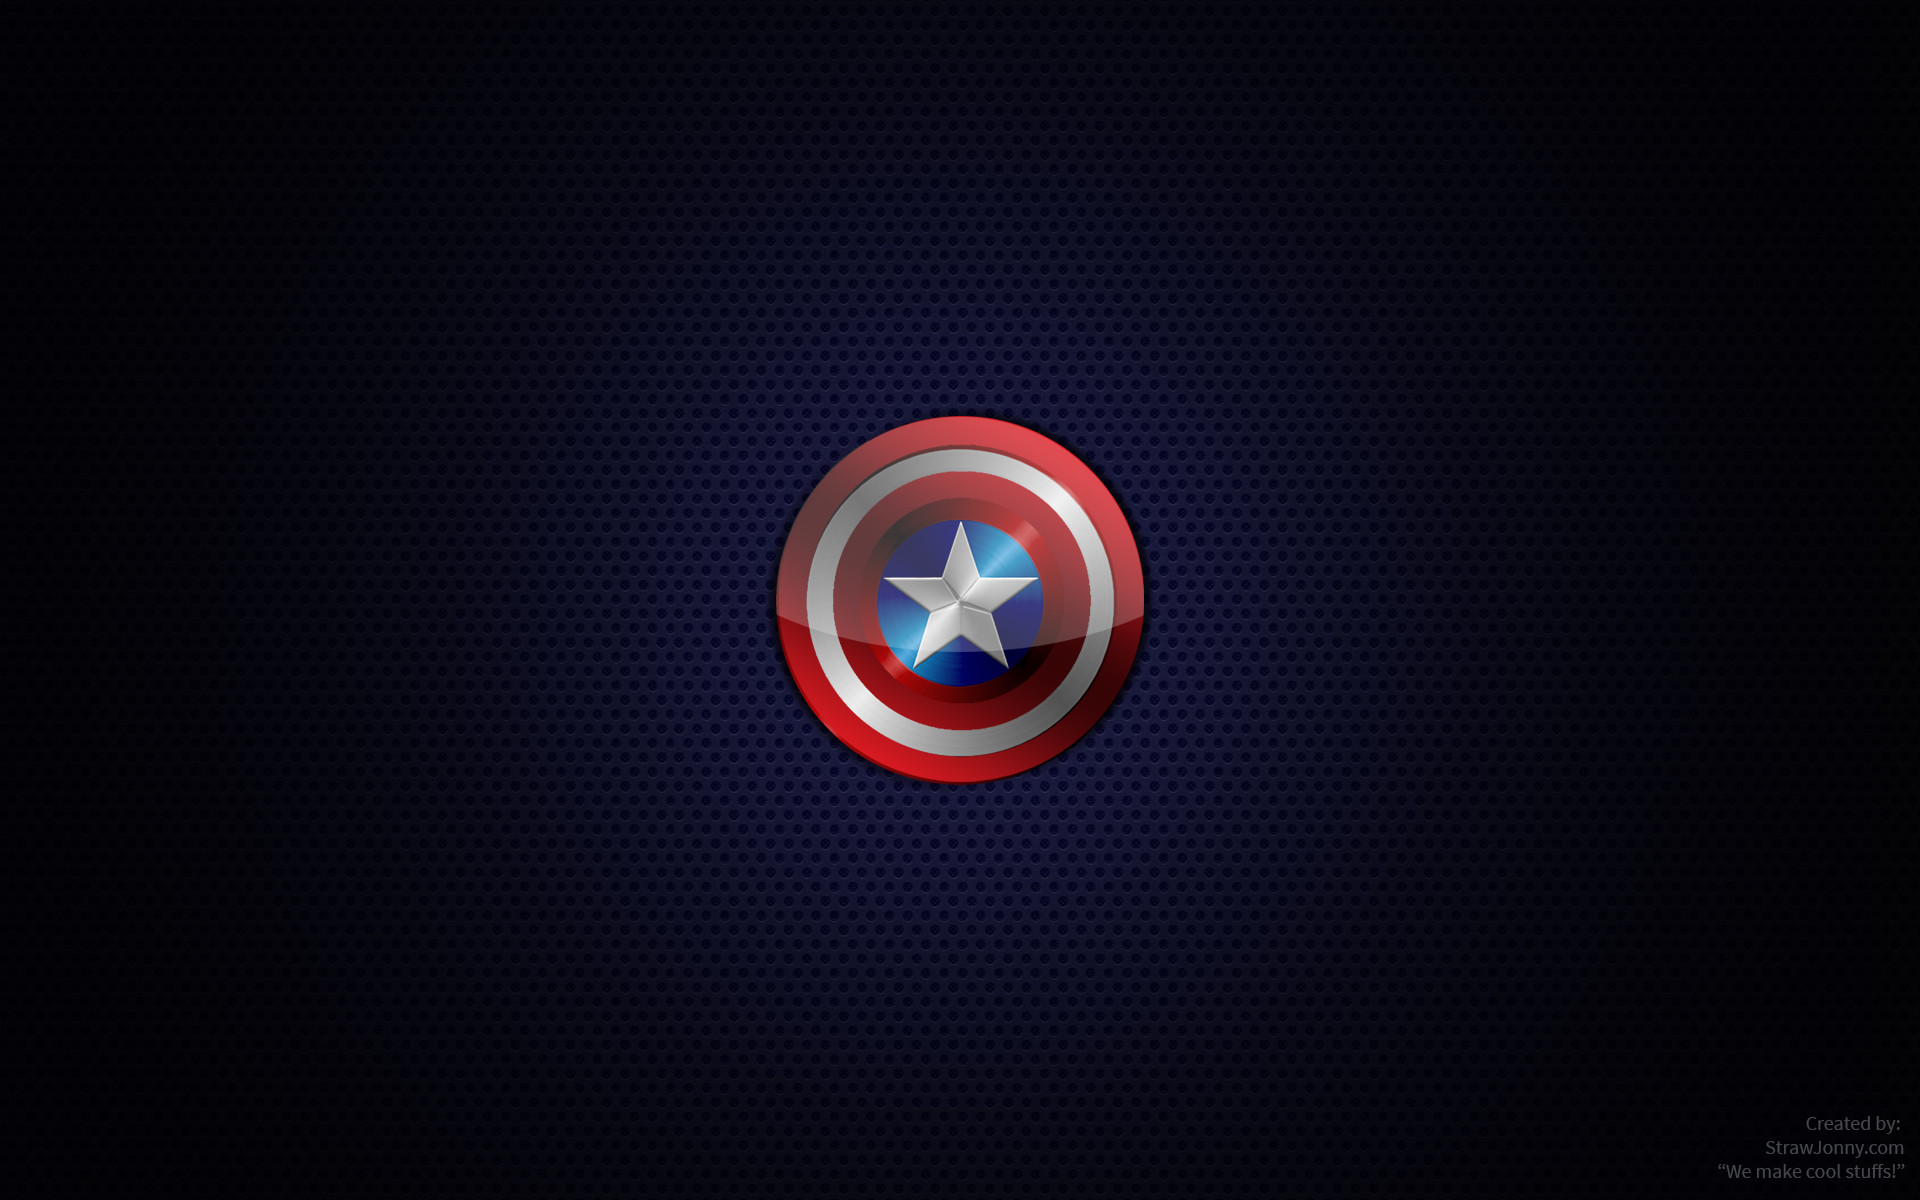 Captain America Wallpapers Best Wallpapers | HD Wallpapers | Pinterest |  Captain america wallpaper and Wallpaper